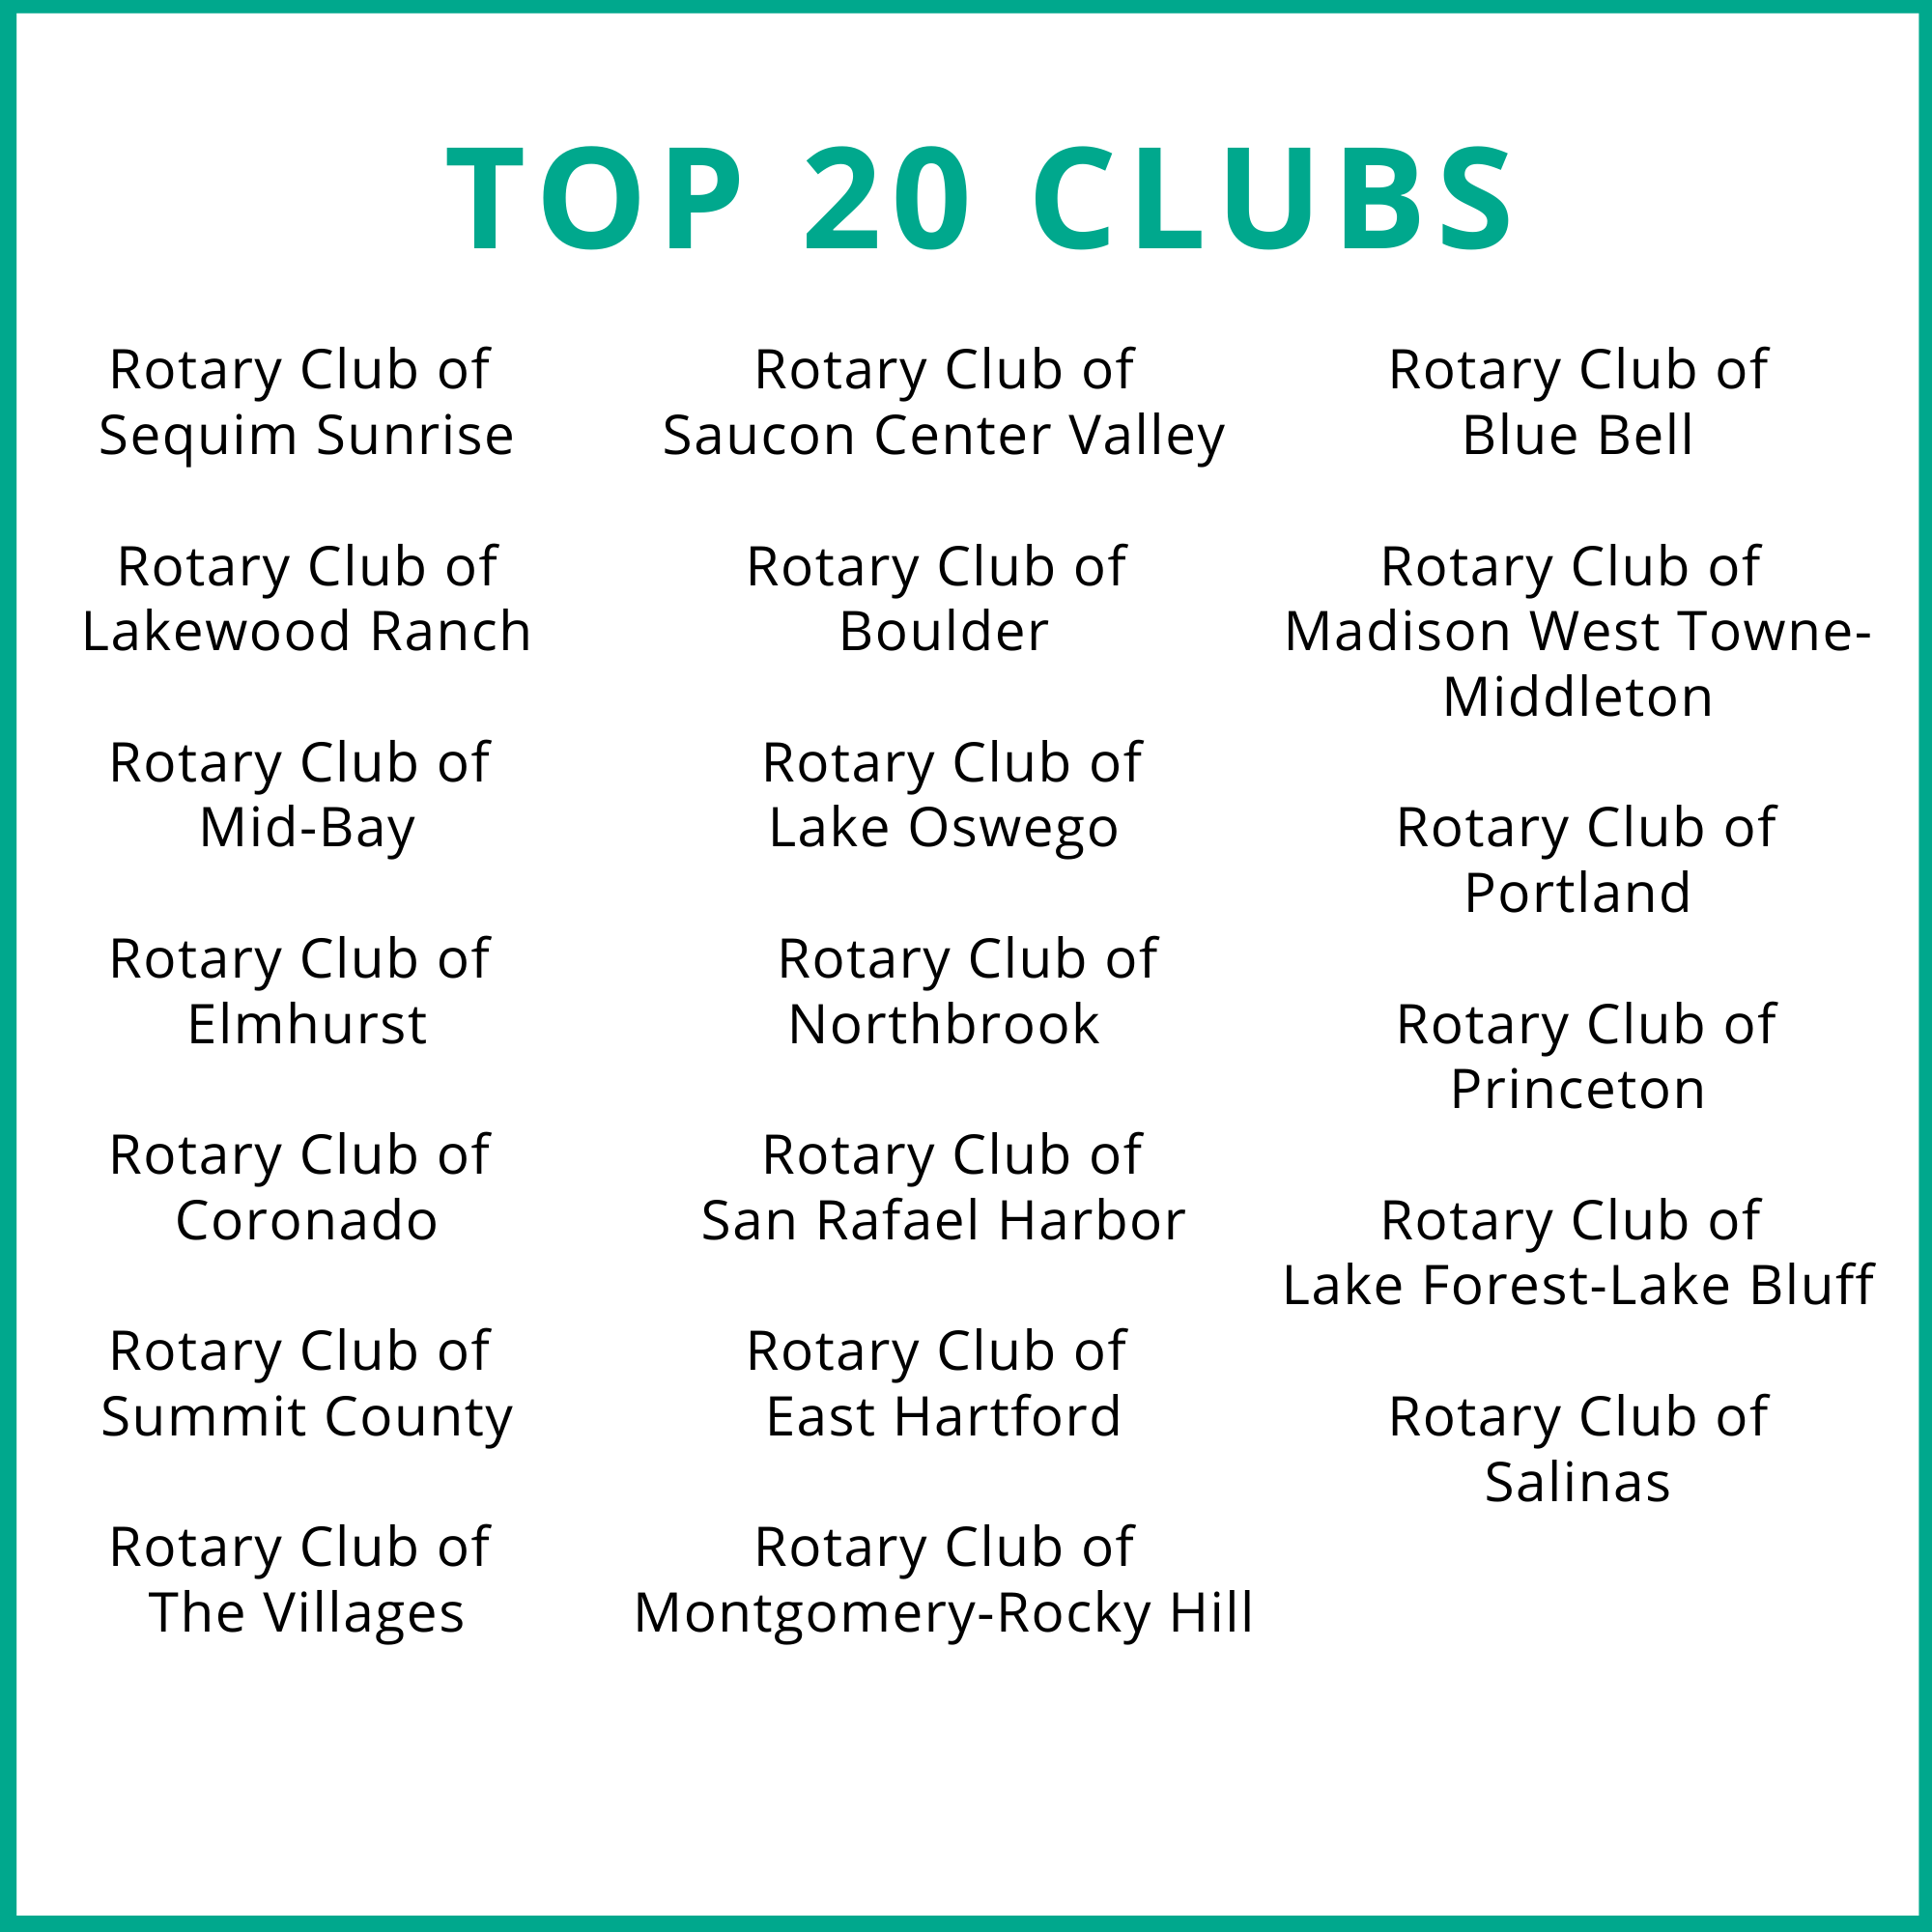 Top 20 Clubs: Sequim Sunrise, Lakewood Ranch, Mid-Bay, Elmhurst, Coronado, Summit County, The Villages, Saucon Center Valley, Boulder, Lake Oswego, Northbrook, San Rafael Harbor, East Hartford, Montgomery-Rocky Hill, Blue Bell, Madison West Towne-Middleton, Portland, Princeton, Lake Forest-Lake Bluff, and Salinas